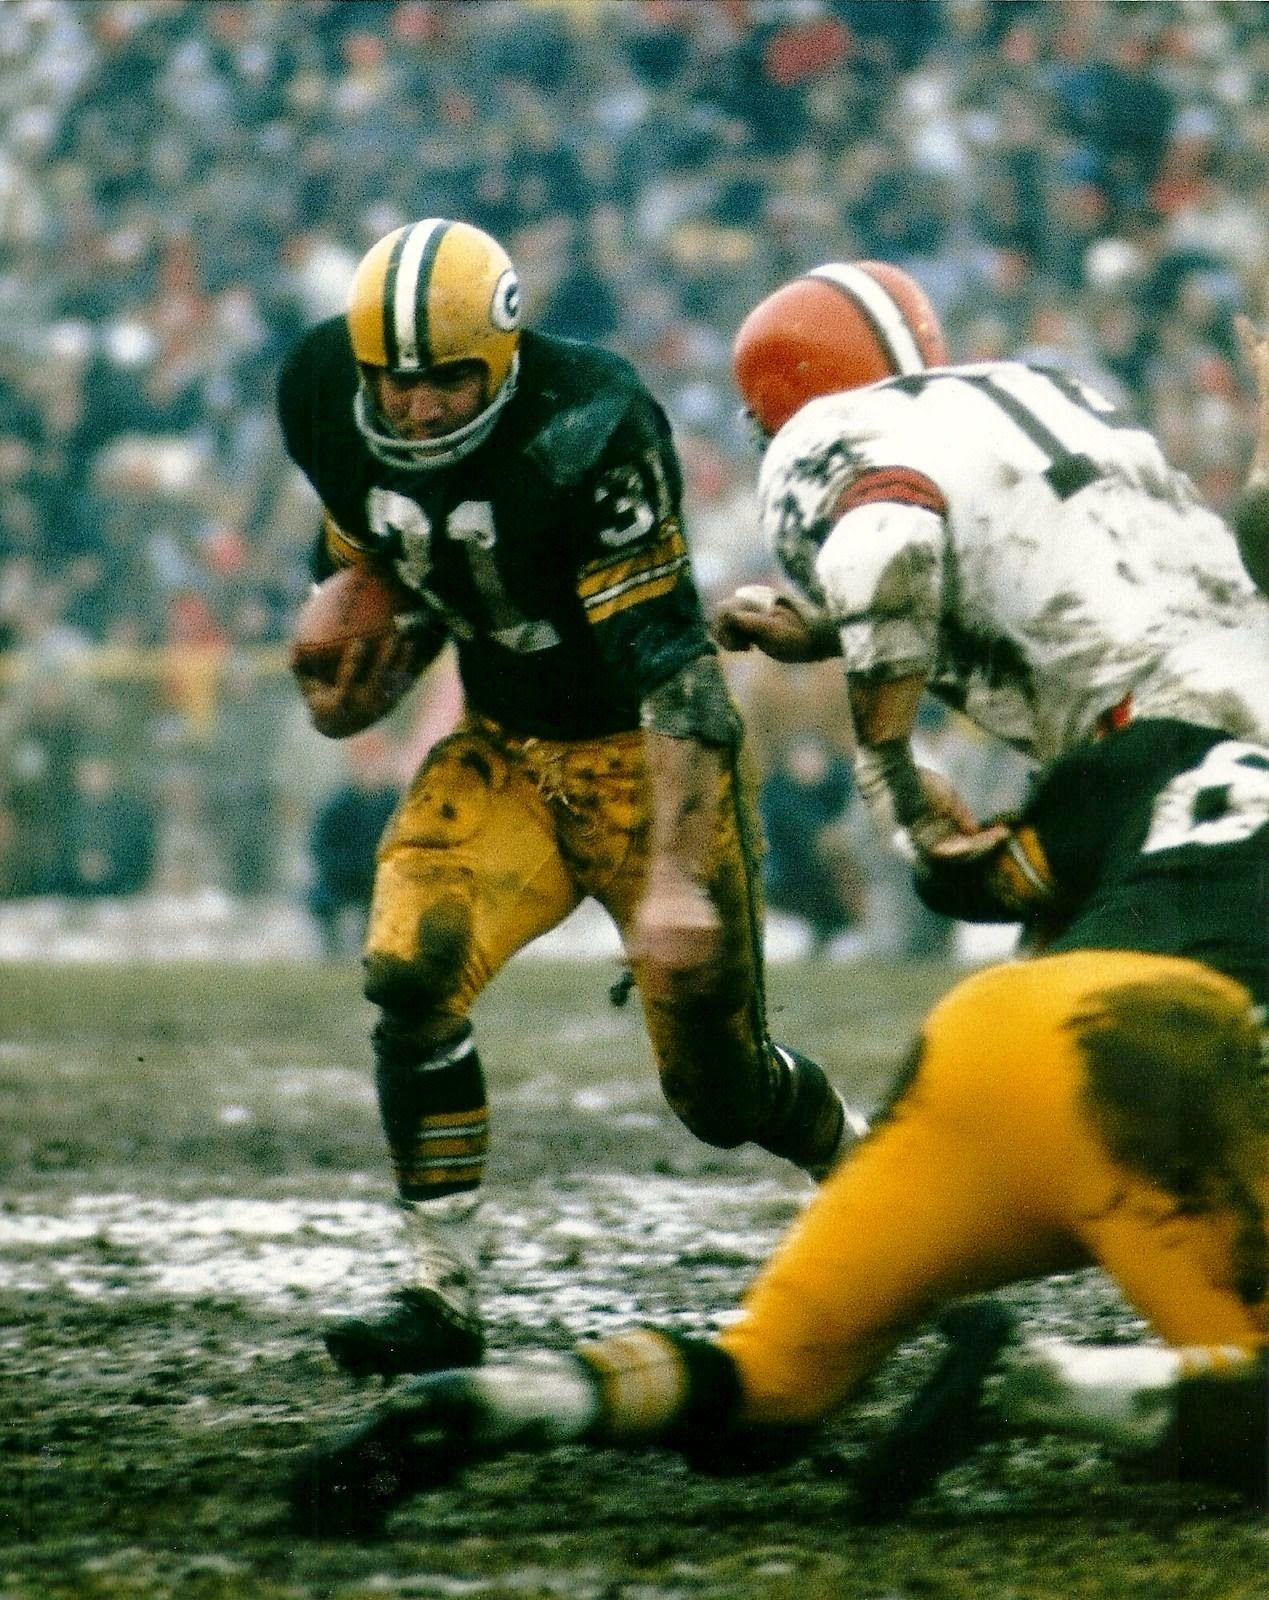 1965 Nfl Championship Game Jim Taylor Nfl Championships Green Bay Packers Vintage Packers Football